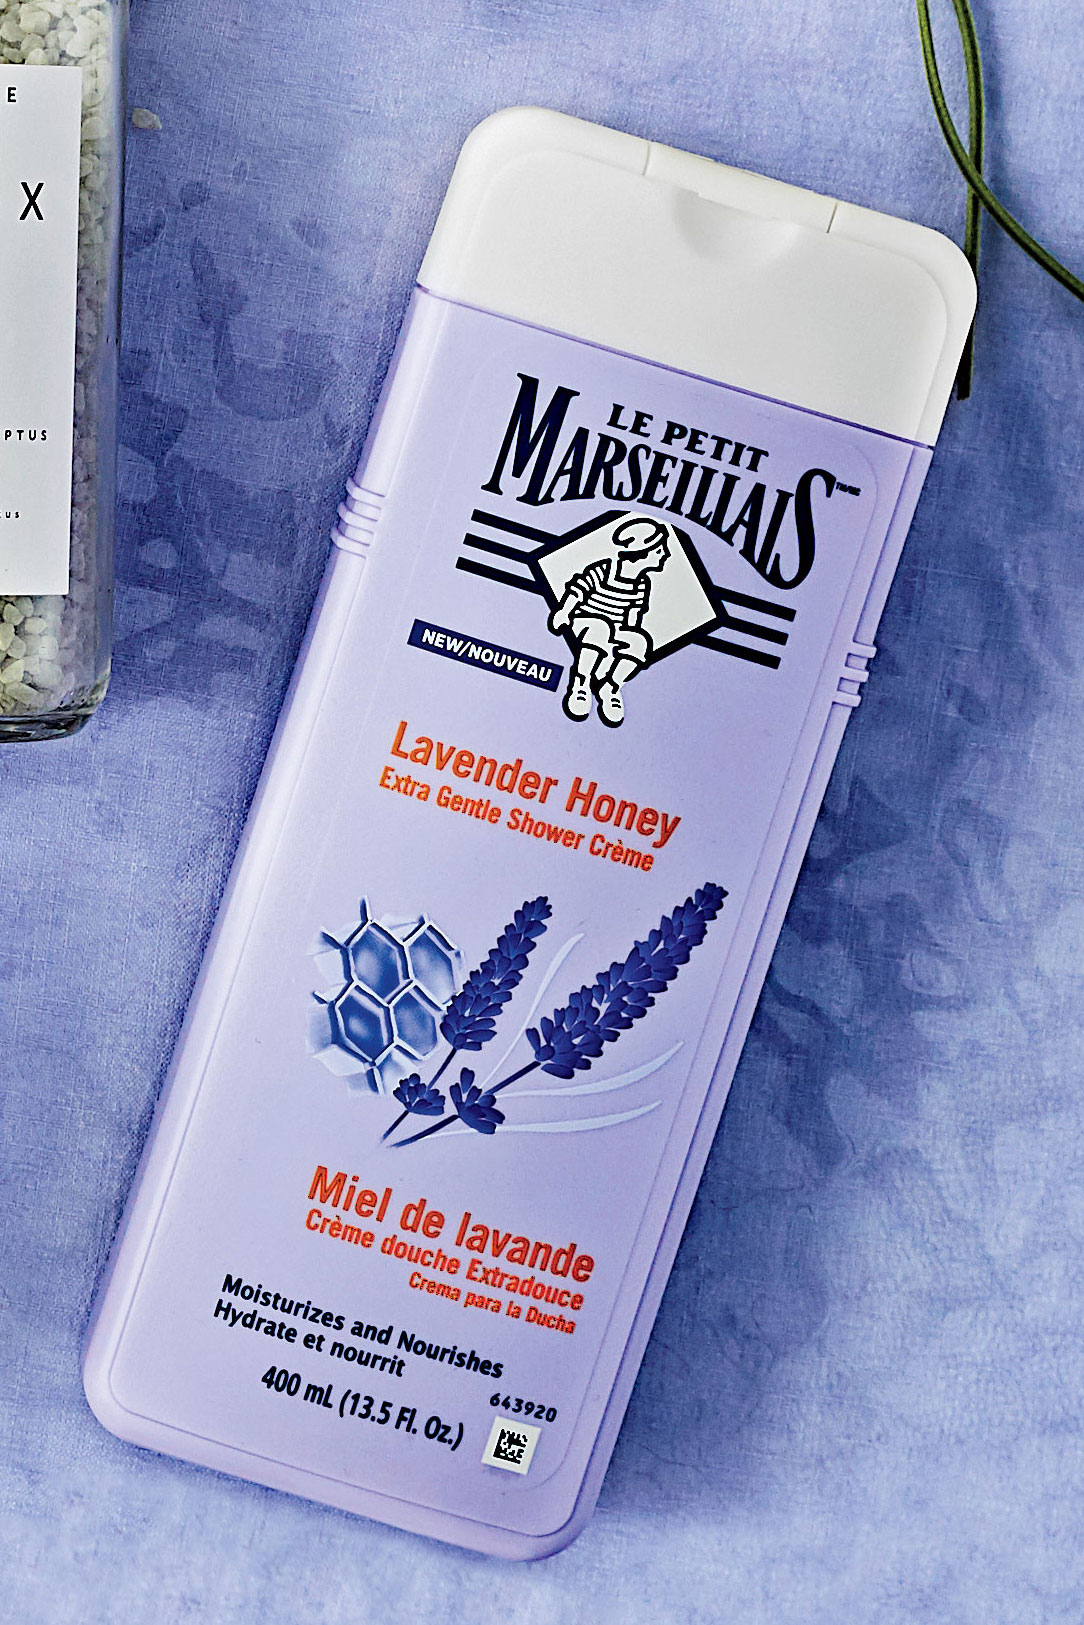 Le Petit Marseillais Lavender Honey Extra Gentle Shower Crème